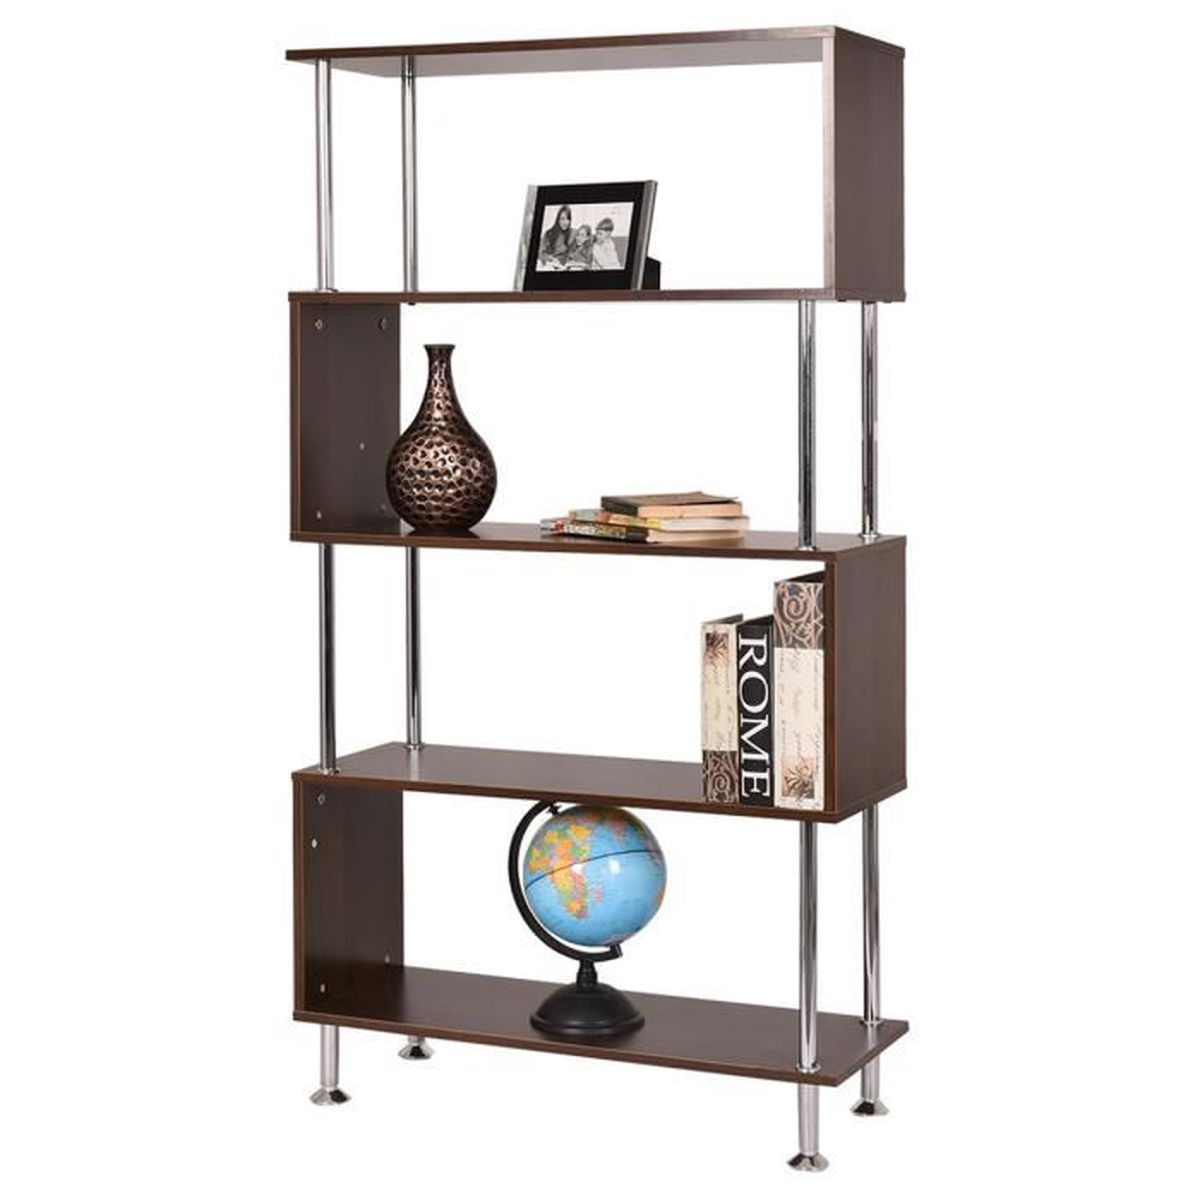 biblioth que tag re livres panneaux m lamin cd dvd 5 compartiments armoire achat vente. Black Bedroom Furniture Sets. Home Design Ideas